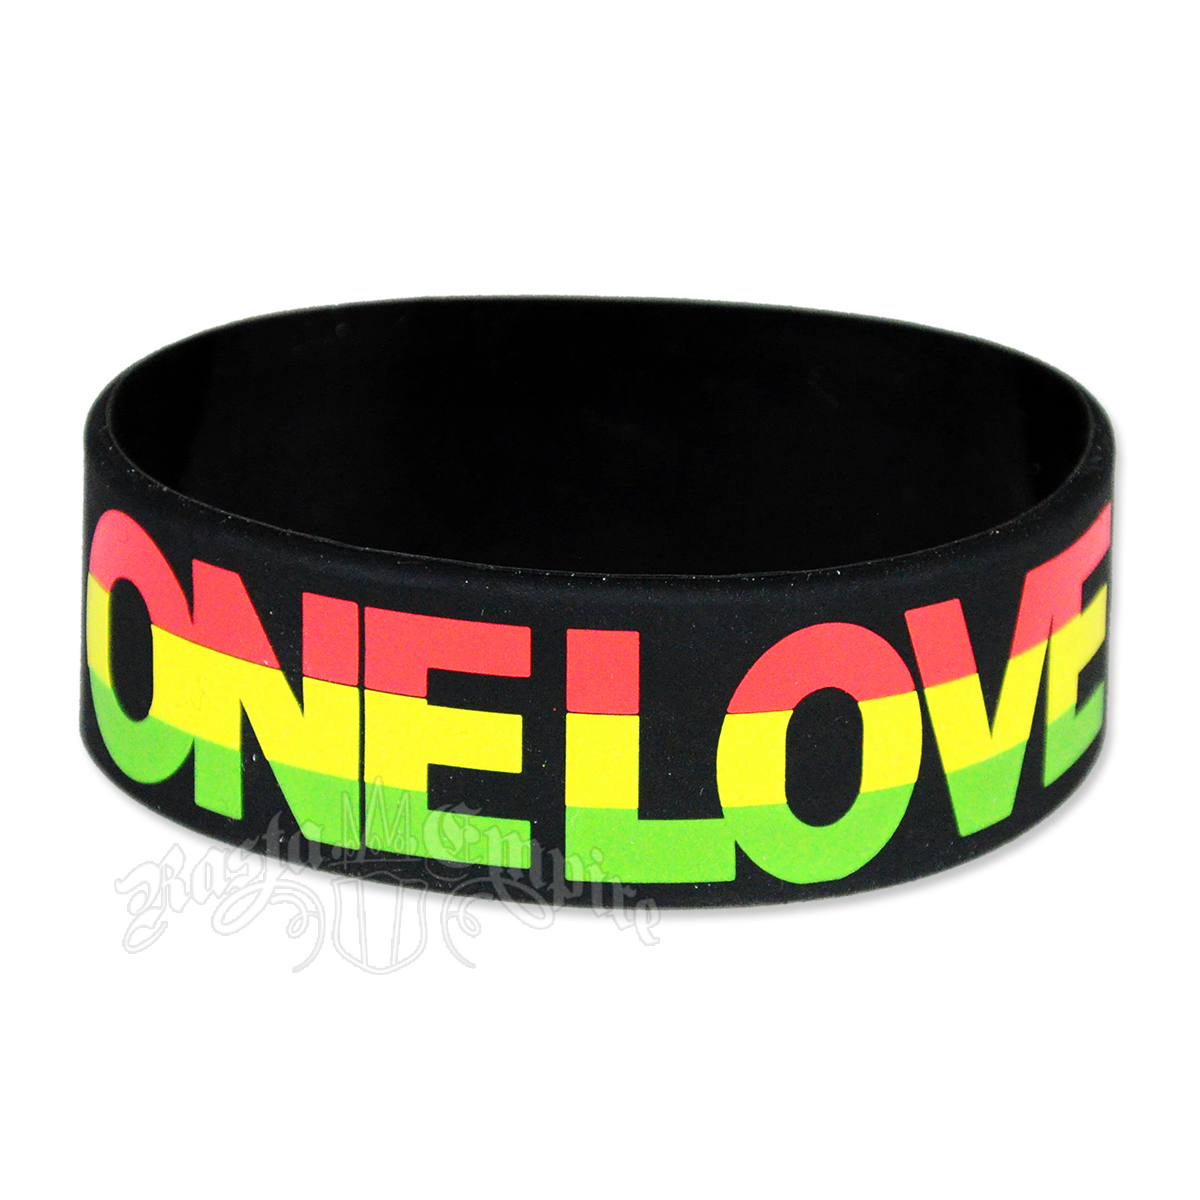 lot bangles from wristband print rubber colorful ocesrio in bracelets bracelet good item luck sport fashion unisex silicone letter brt wrap jewelry